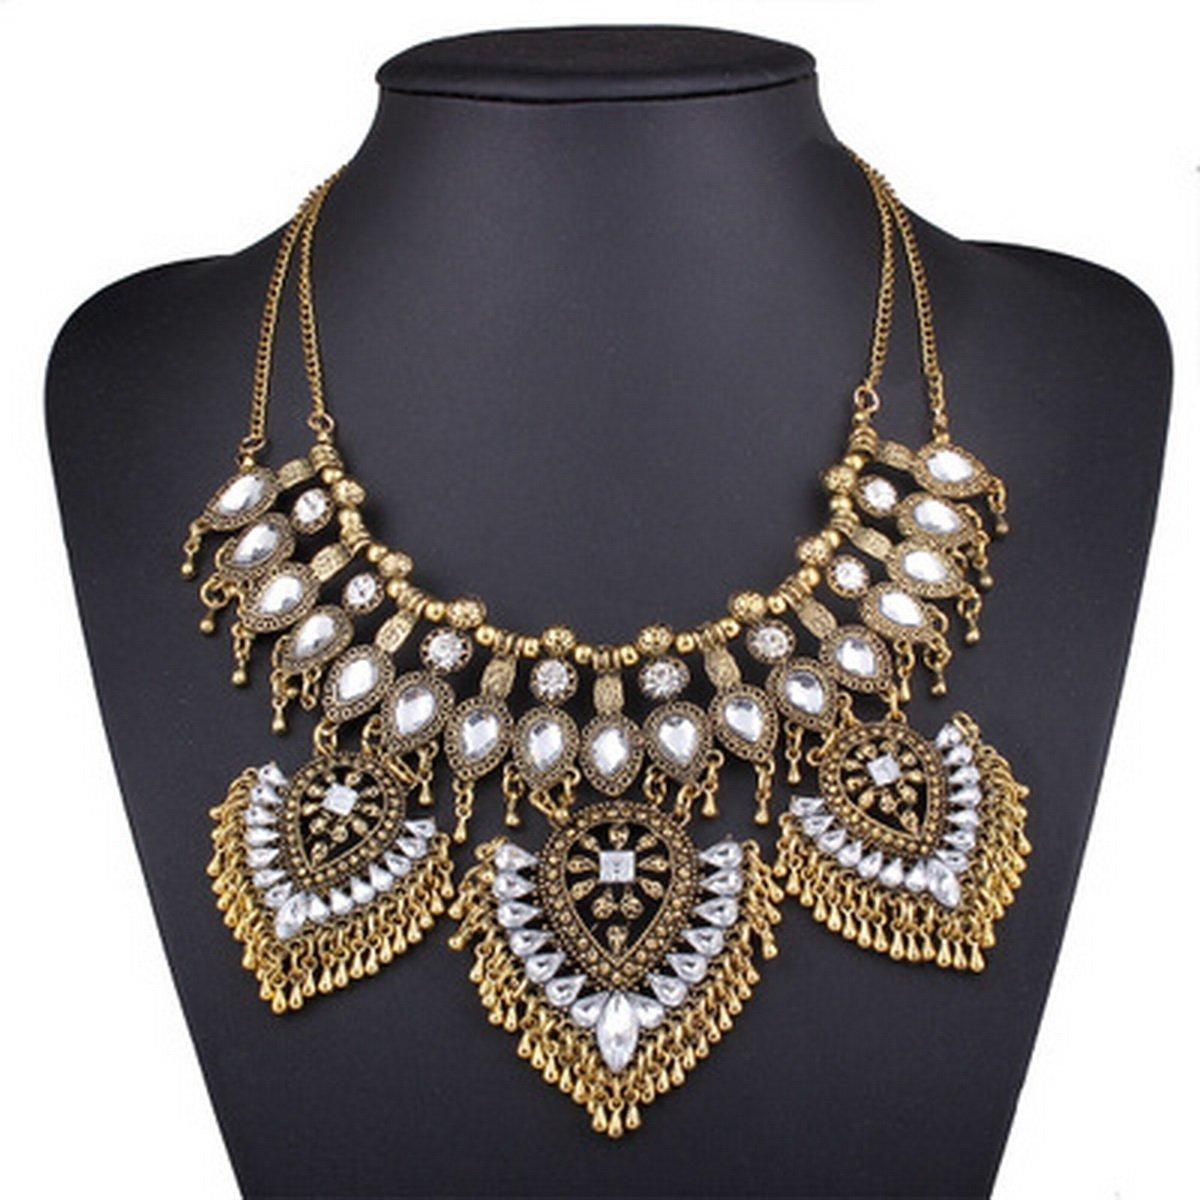 ARICO Big Maxi Nacklace Crystal Beads Statement Necklace Chain Chunky Necklace Enamel Jewelry NE427